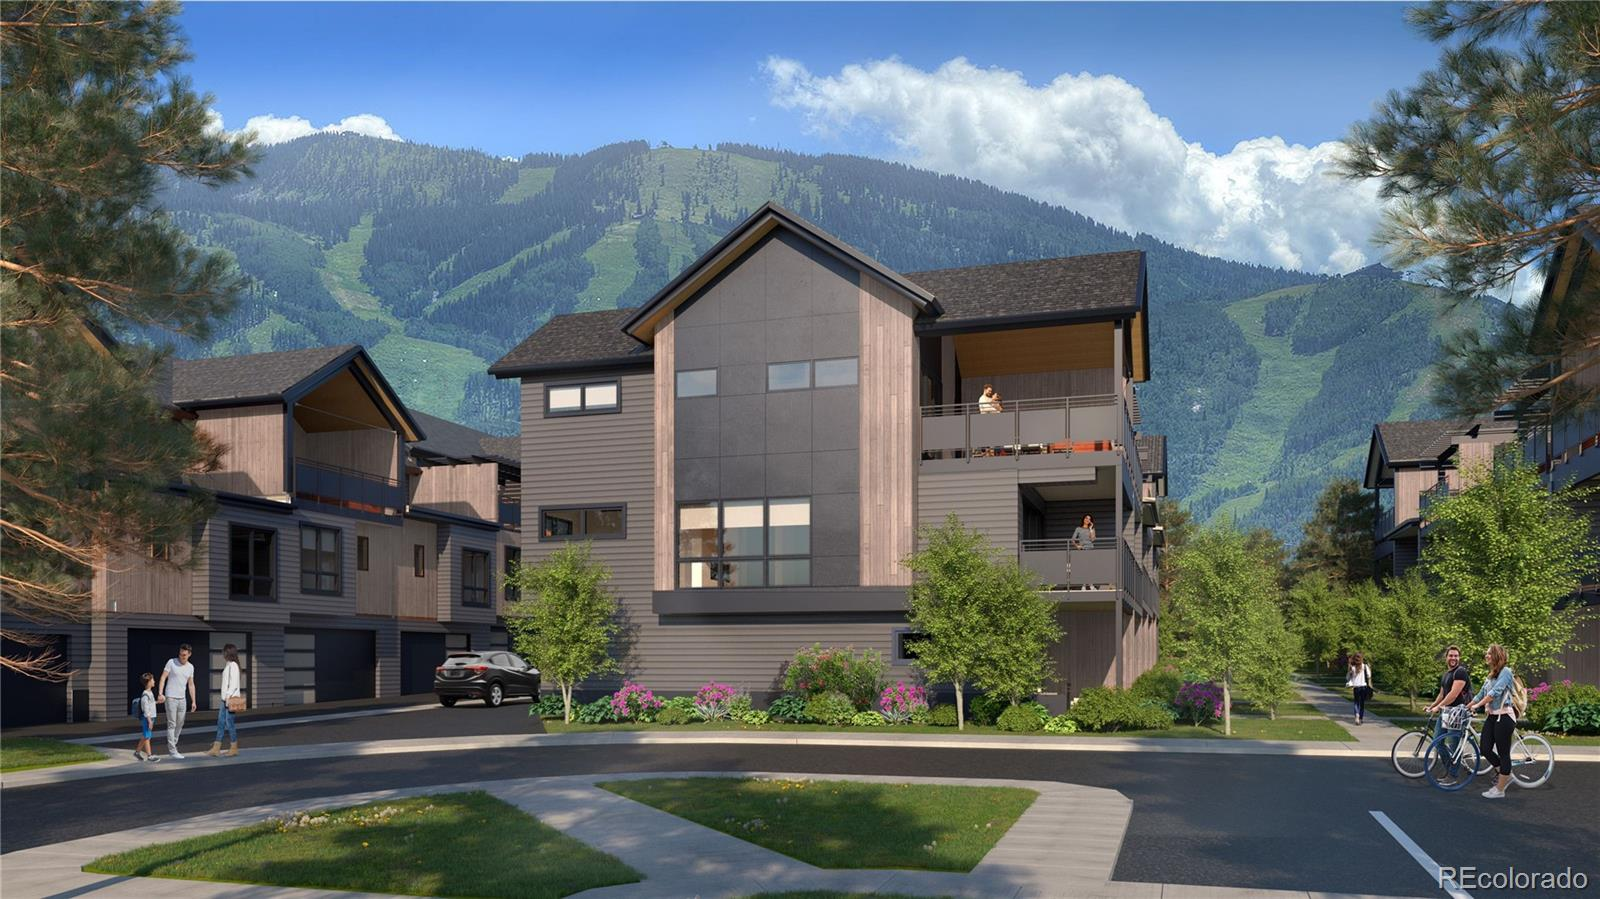 MLS# 7005968 - 2 - 2558 Cattle Kate Circle #E, Steamboat Springs, CO 80487